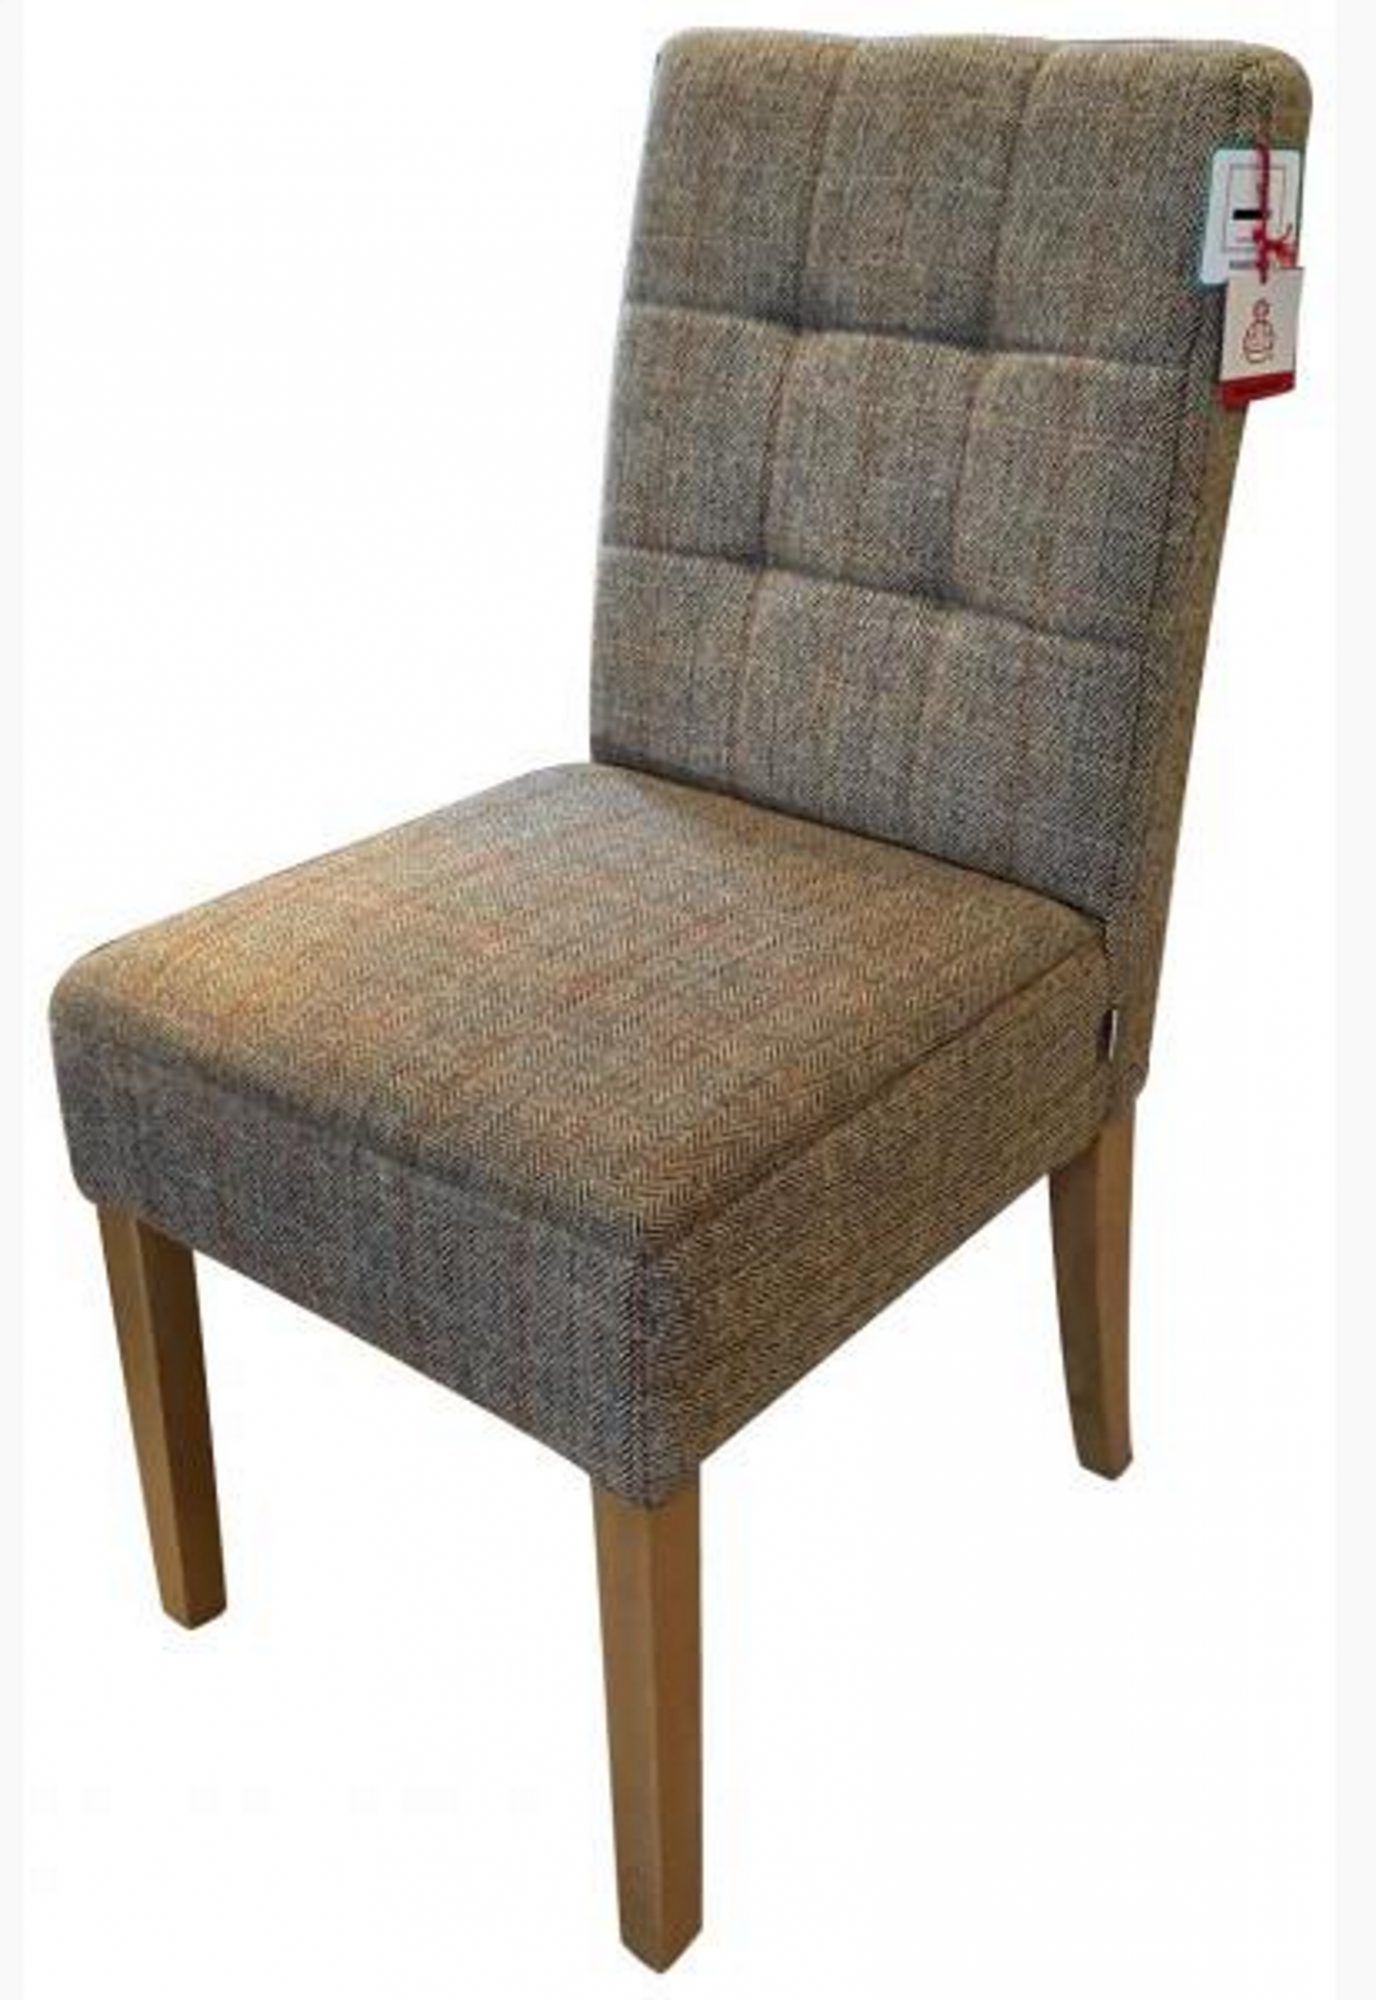 Carlton Wood Leg Upholstered Dining Chairs With Regard To Recent Carlton Furniture Additions Dining Chair Colin In Harris Tweed (View 17 of 20)